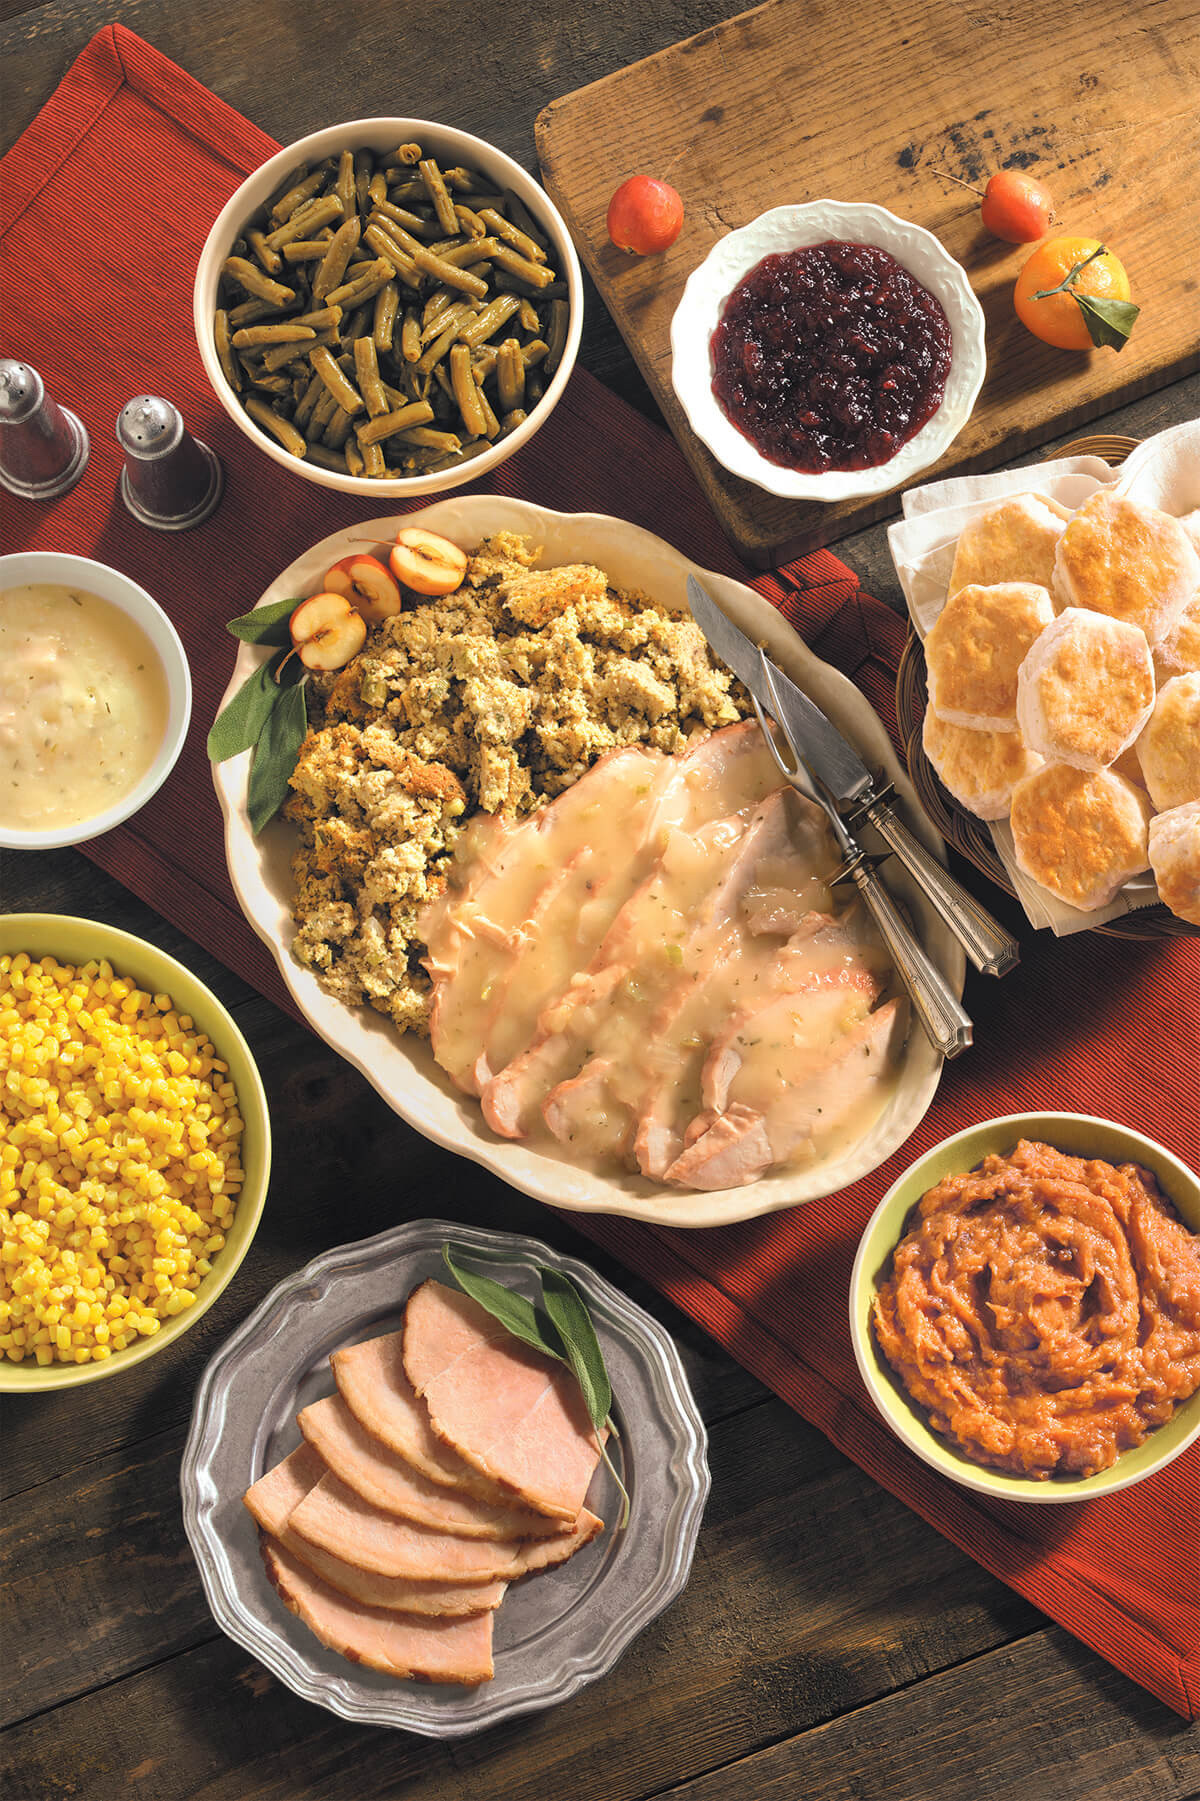 To Go Thanksgiving Dinners  Cracker Barrel to Serve 1 4 Million Meals This